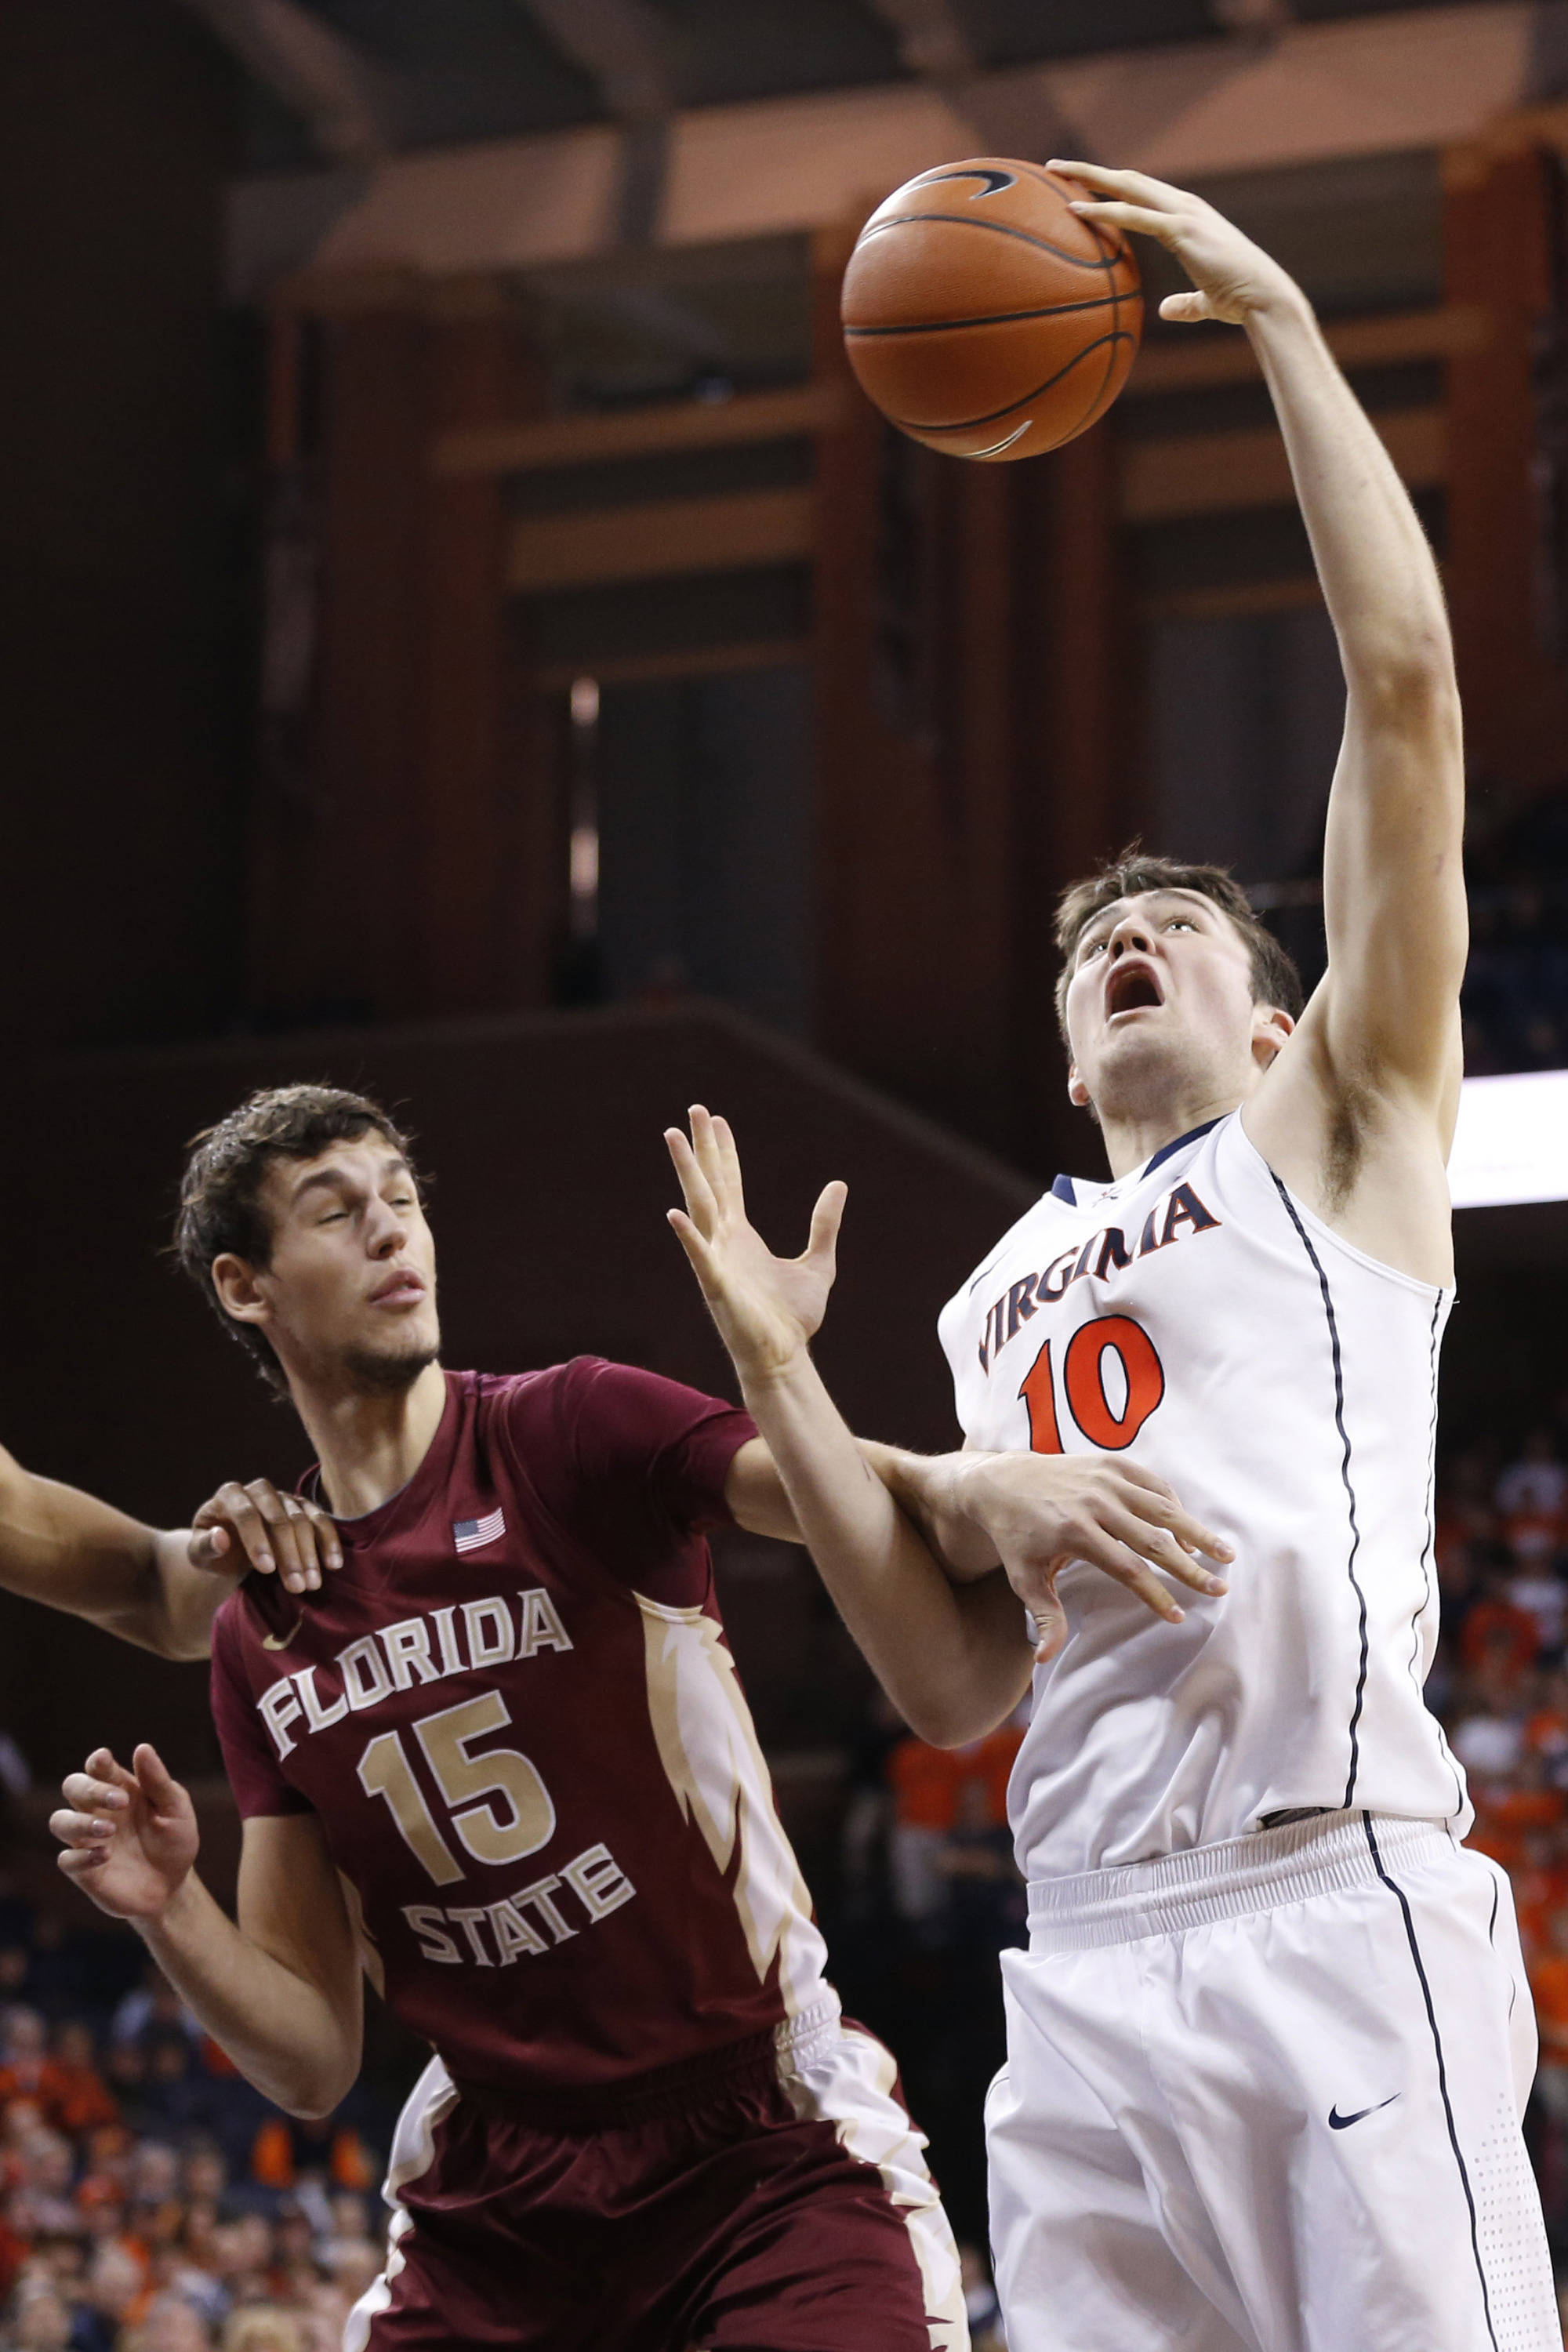 Jan 18, 2014; Charlottesville, VA, USA; Virginia Cavaliers forward/center Mike Tobey (10) grabs the ball in front of Florida State Seminoles center Boris Bojanovsky (15) in the second half at John Paul Jones Arena. The Cavaliers won 78-66. Mandatory Credit: Geoff Burke-USA TODAY Sports